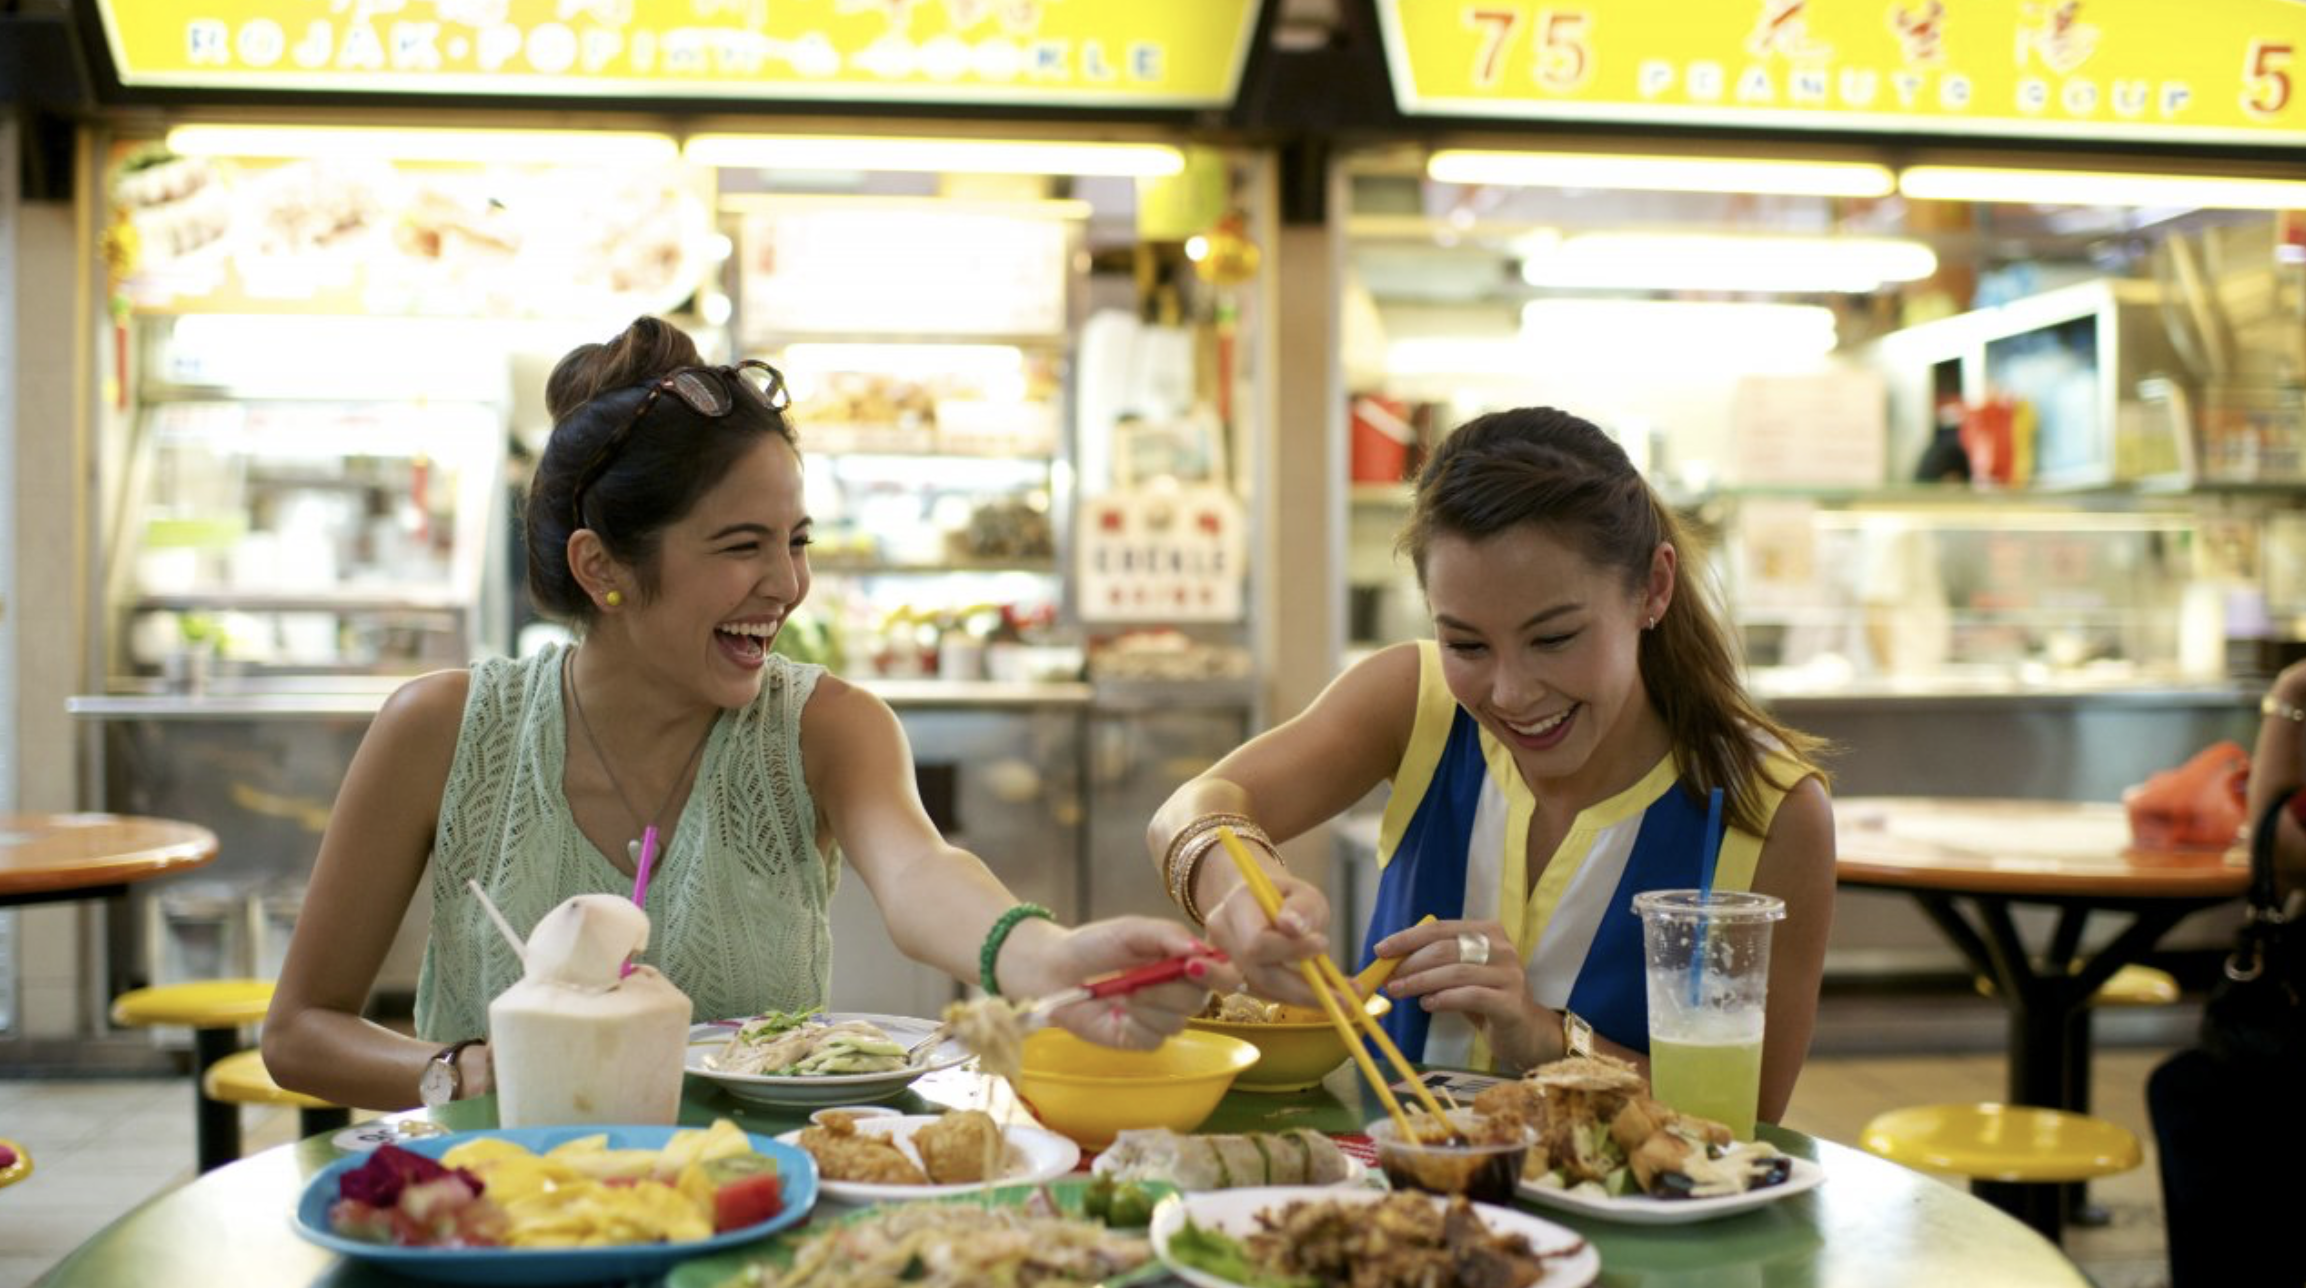 Small Group Cultural and Historical Food Tour of Singapore - $110.34/ppEat like a local on a food tour and discover why Singaporeans love their food so much!Sightseeing and food tastings in Kampong Glam, Little India, Katong and Old Airport Road. Included are 10+ foodie tastings in 5.5 hours. Learn about the history of food in Singapore, from it's founding in 1819 by Sir Stamford Raffles through to the present day. A maximum of 8 people on this small group tour.Start your food tour in the East Coast Area of Singapore and learn about the early Chinese immigrants to Singapore. The focus will be on food but we will also talk about the types of jobs that they had, how they lived and who they married.Here you will enjoy a selection of Singapore's favourite foods with Chinese and Peranakan heritage which includes Kaya Toast and Kopi, Bak Chang (rice dumplings) and Laksa.Next we visit The Old Airport Road Hawker Centre which is home to so many 'hawker legends'. It is here that where you try two of three distinctly Singaporean dishes, Hokkien Mee, Rojak and Carrot Cake.Your next stop is the district of Kampong Glam where the stunning Sultan's Mosque is located. We will discuss the Sultan's role in the founding of Modern Singapore and we will try the most popular local foods from the Malay, Arabic and Indonesian communities.Our final stop is Little India where we will be trying some popular savory Indian dishes and then finishing with some Indian sweets and Masala Milk.